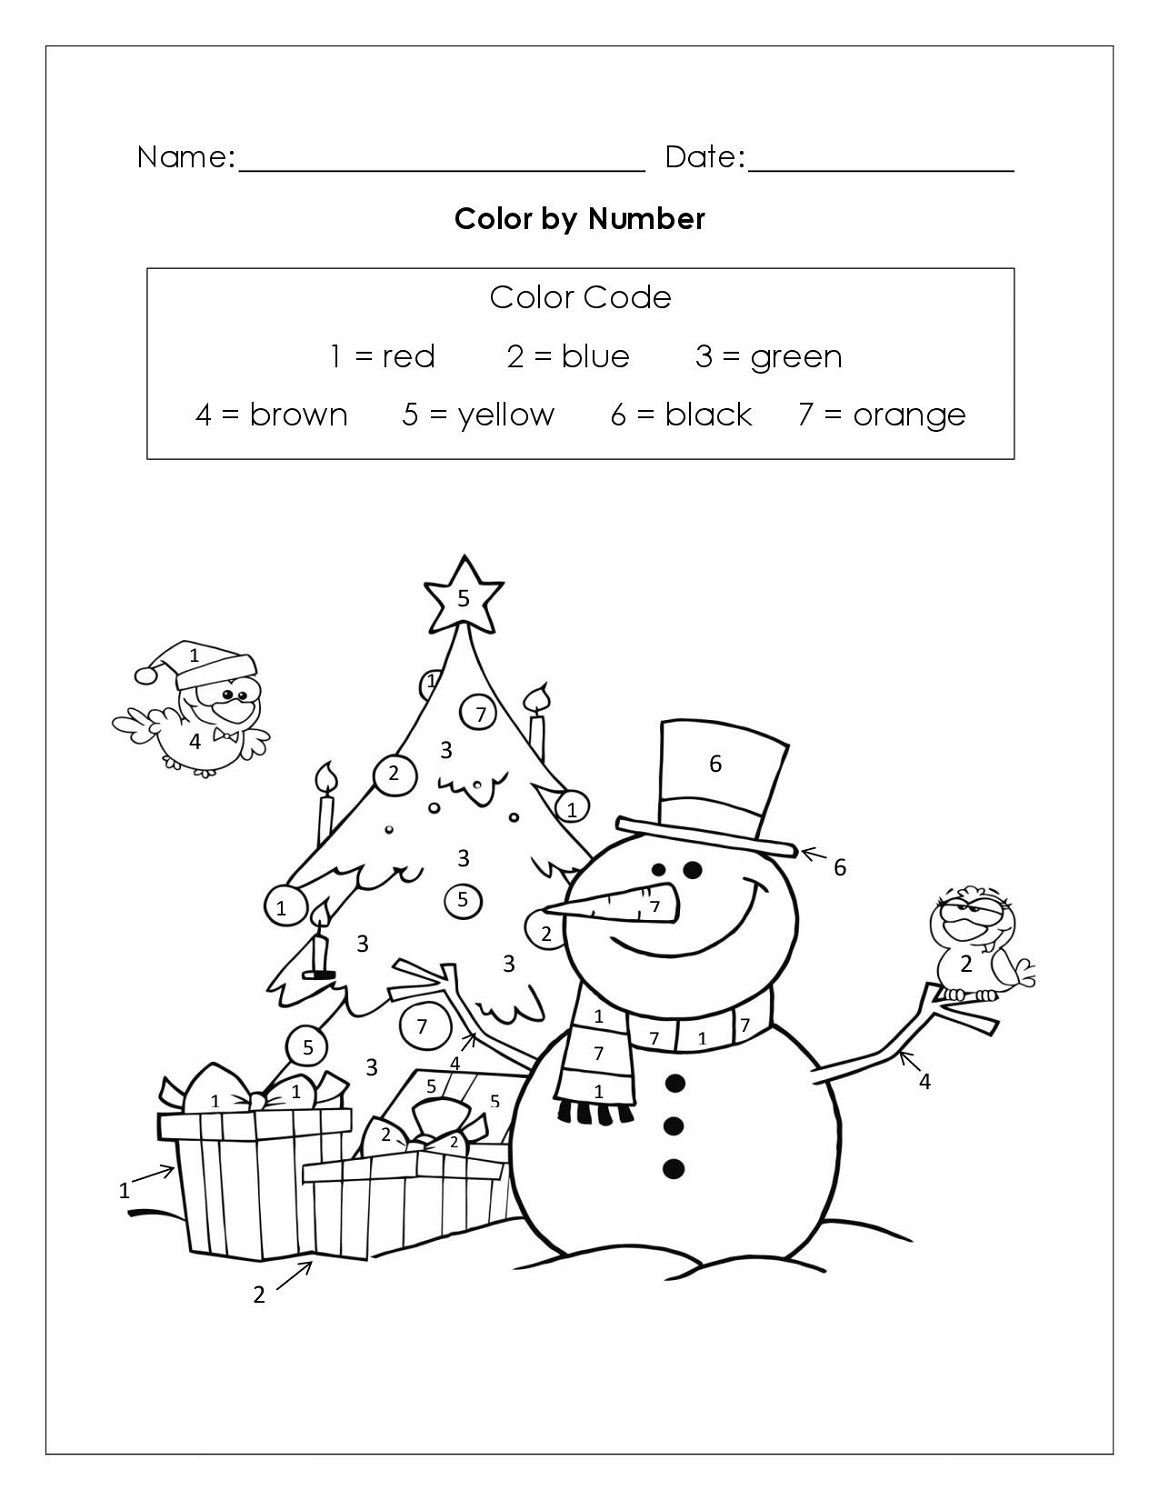 Color by Numbers Worksheets Printable – Color by Number Christmas Worksheets